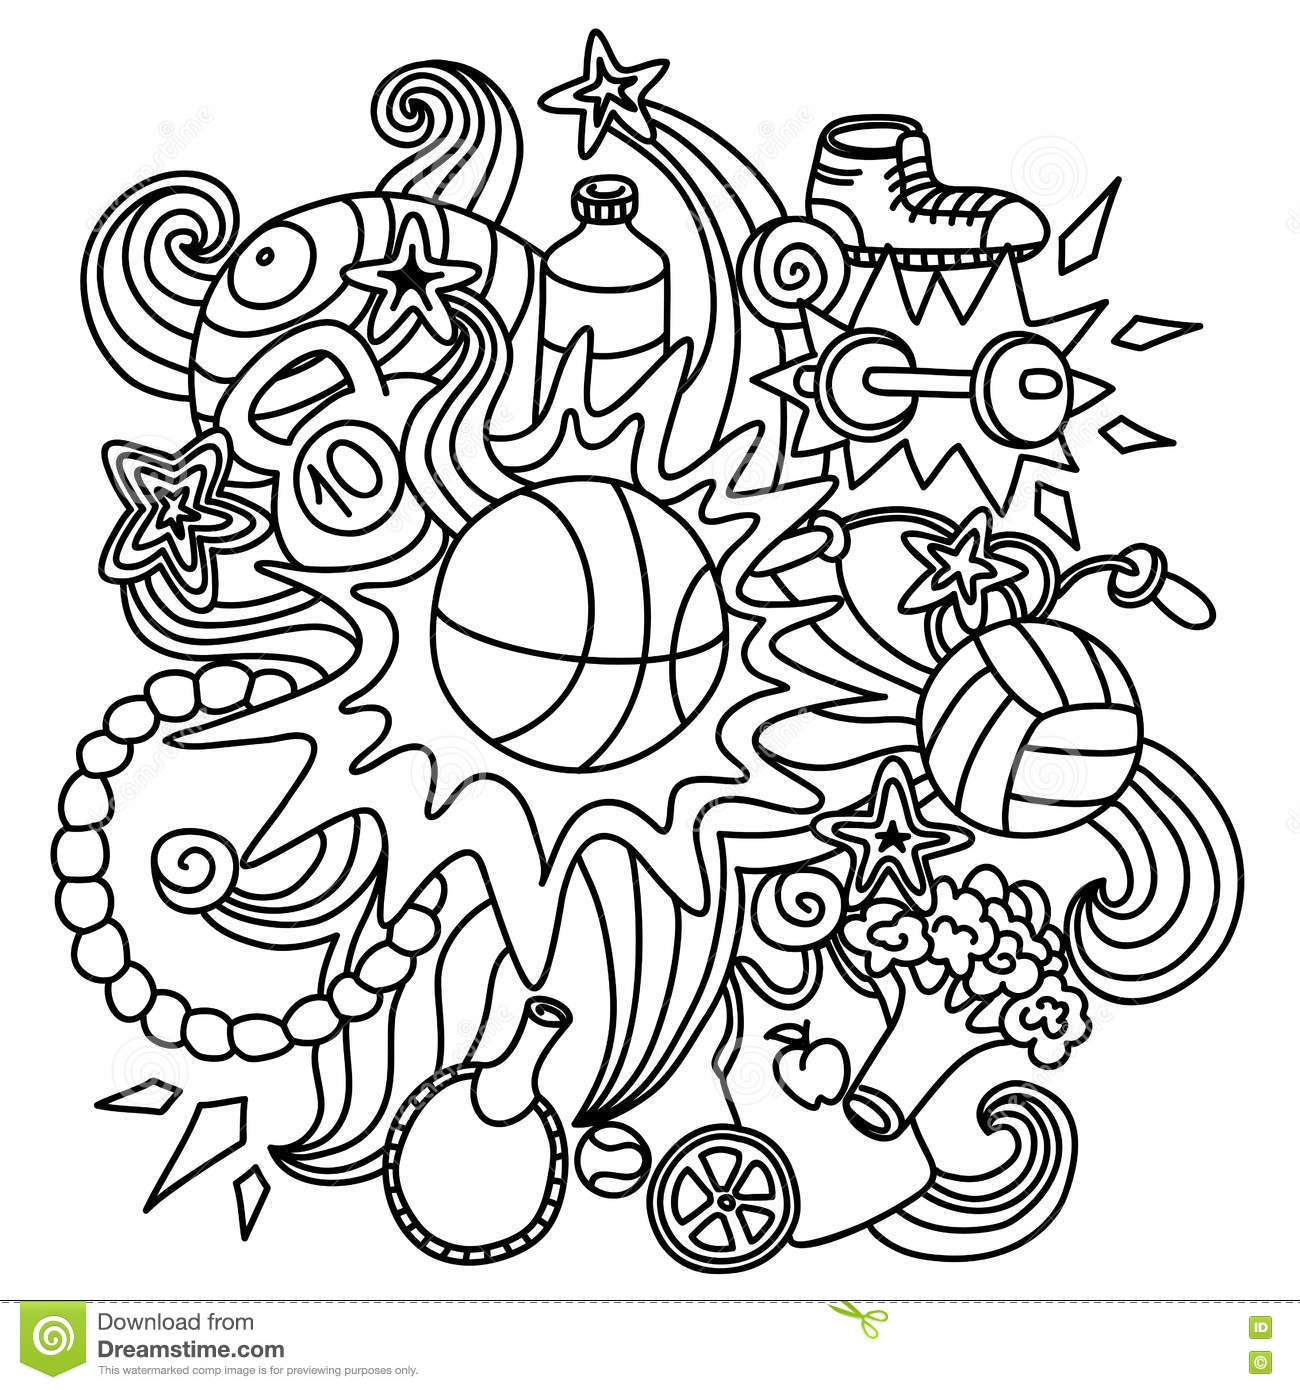 The composition of the sports doodle elements stock vector for Doodle art free